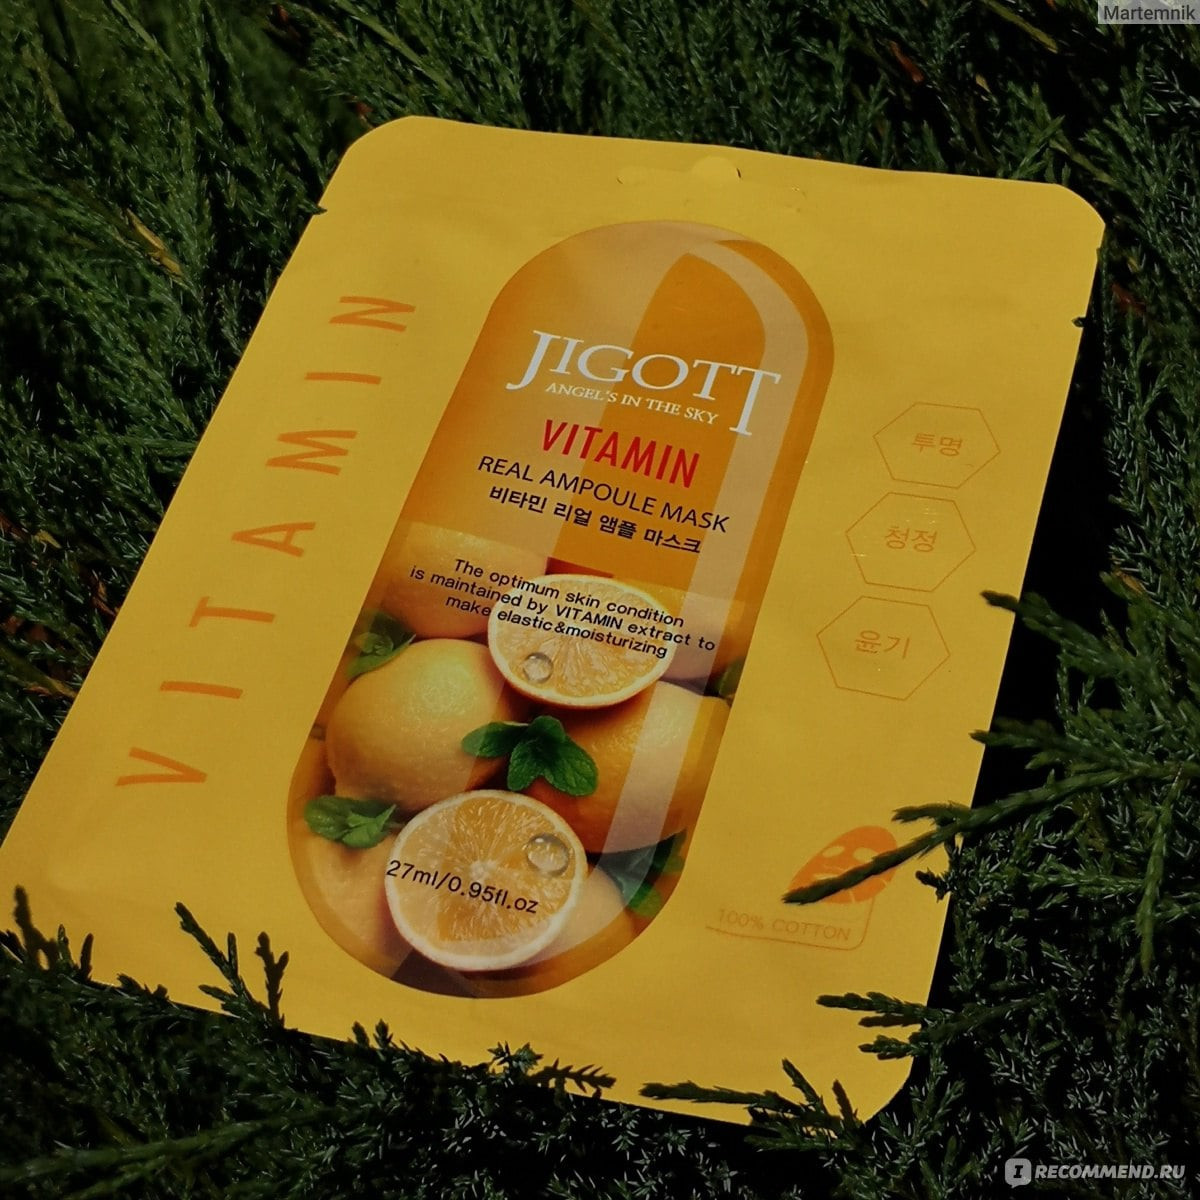 Vitamin Real Ampoule Mask [Jigott]